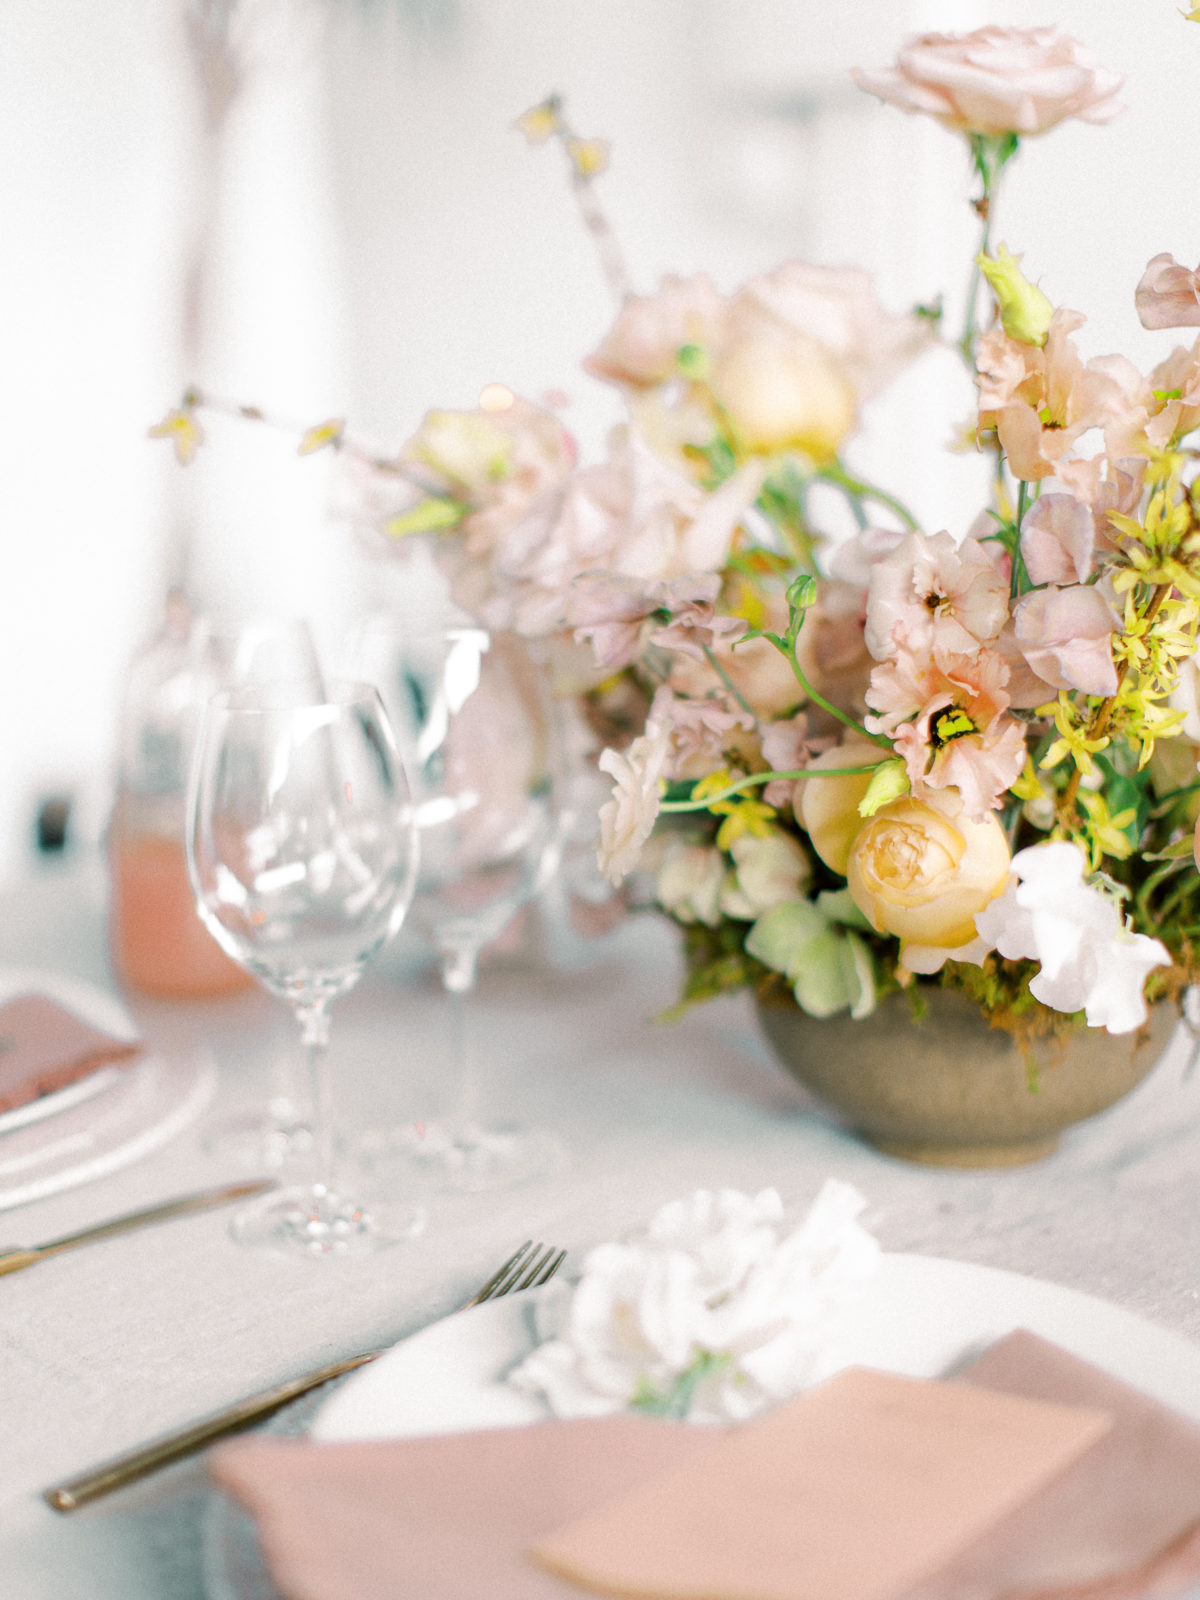 Mauve and peach wedding centerpieces: Whimsical Wedding Inspiration at The Place at Tyler from The Bridal Masterclass featured on Alexa Kay Events